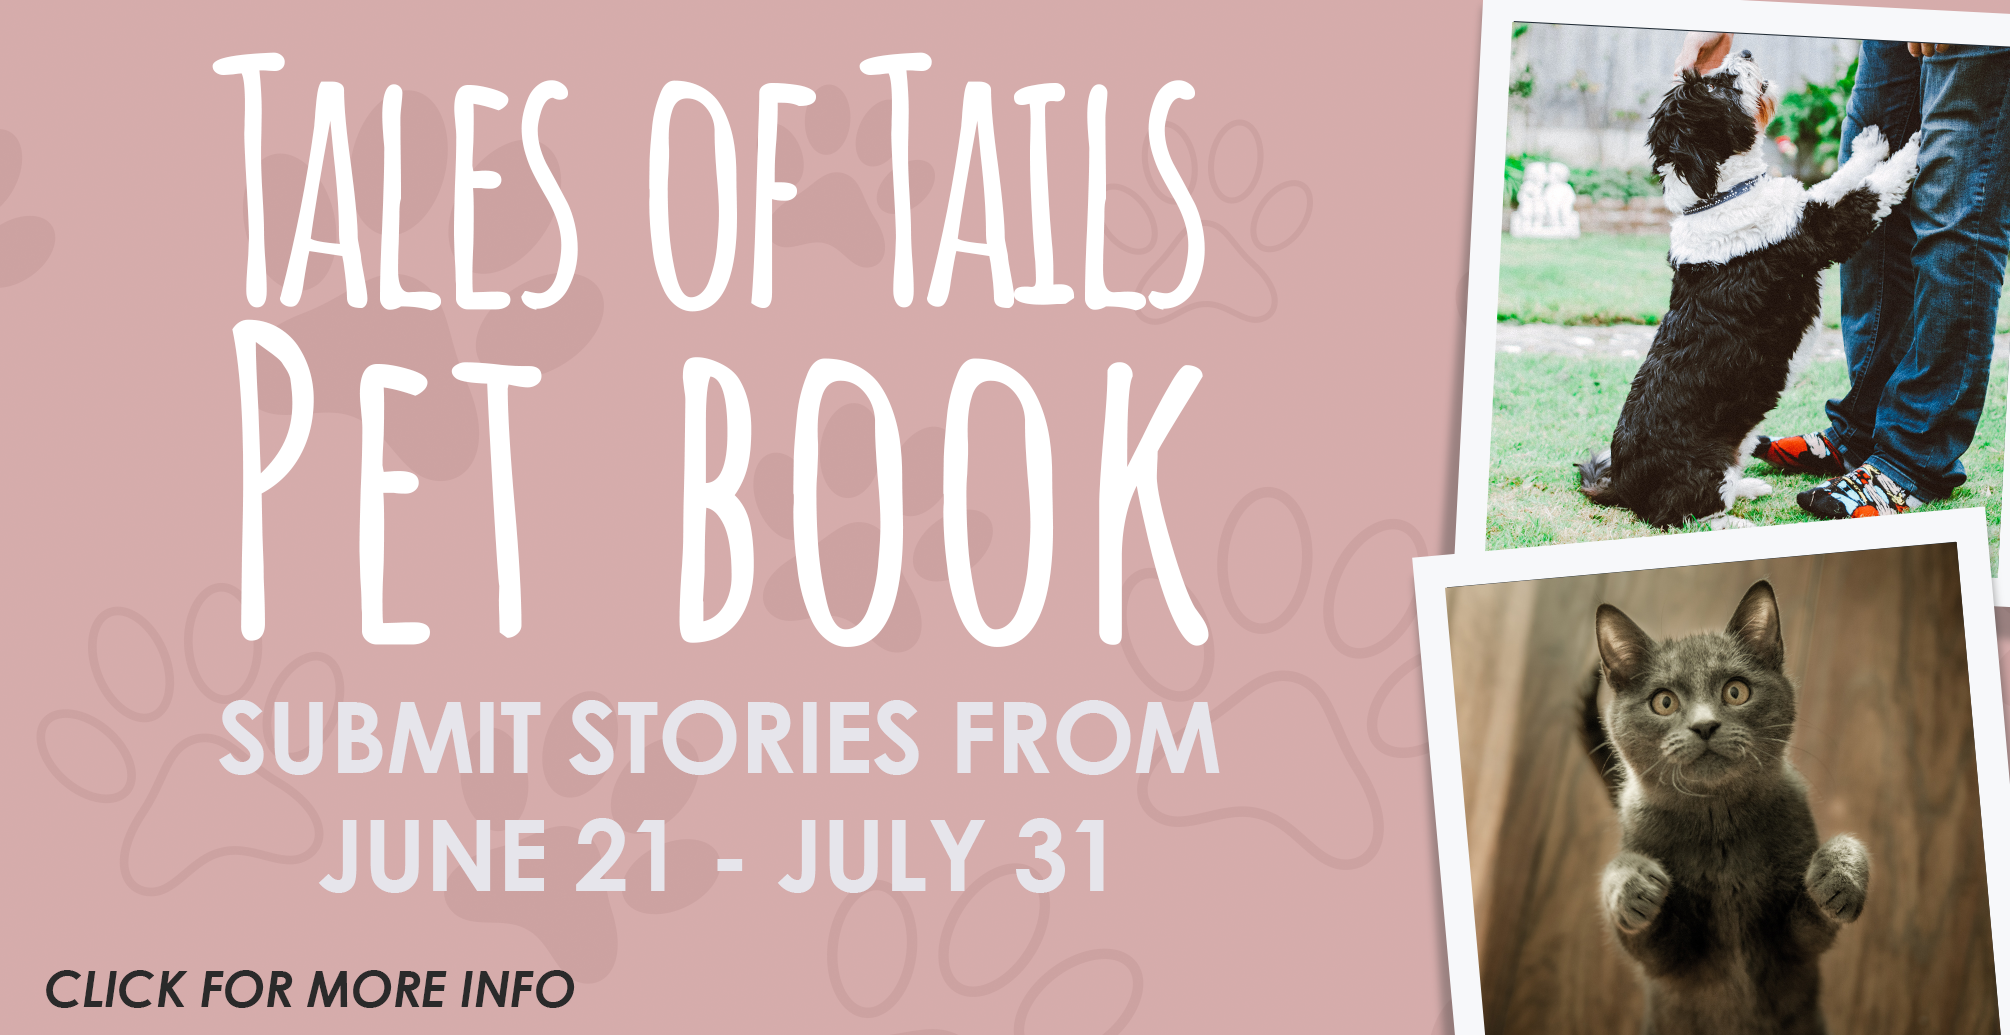 2021-06-CHILDRENS-Library-Tales-of-Tails-Pet-Book-Slide